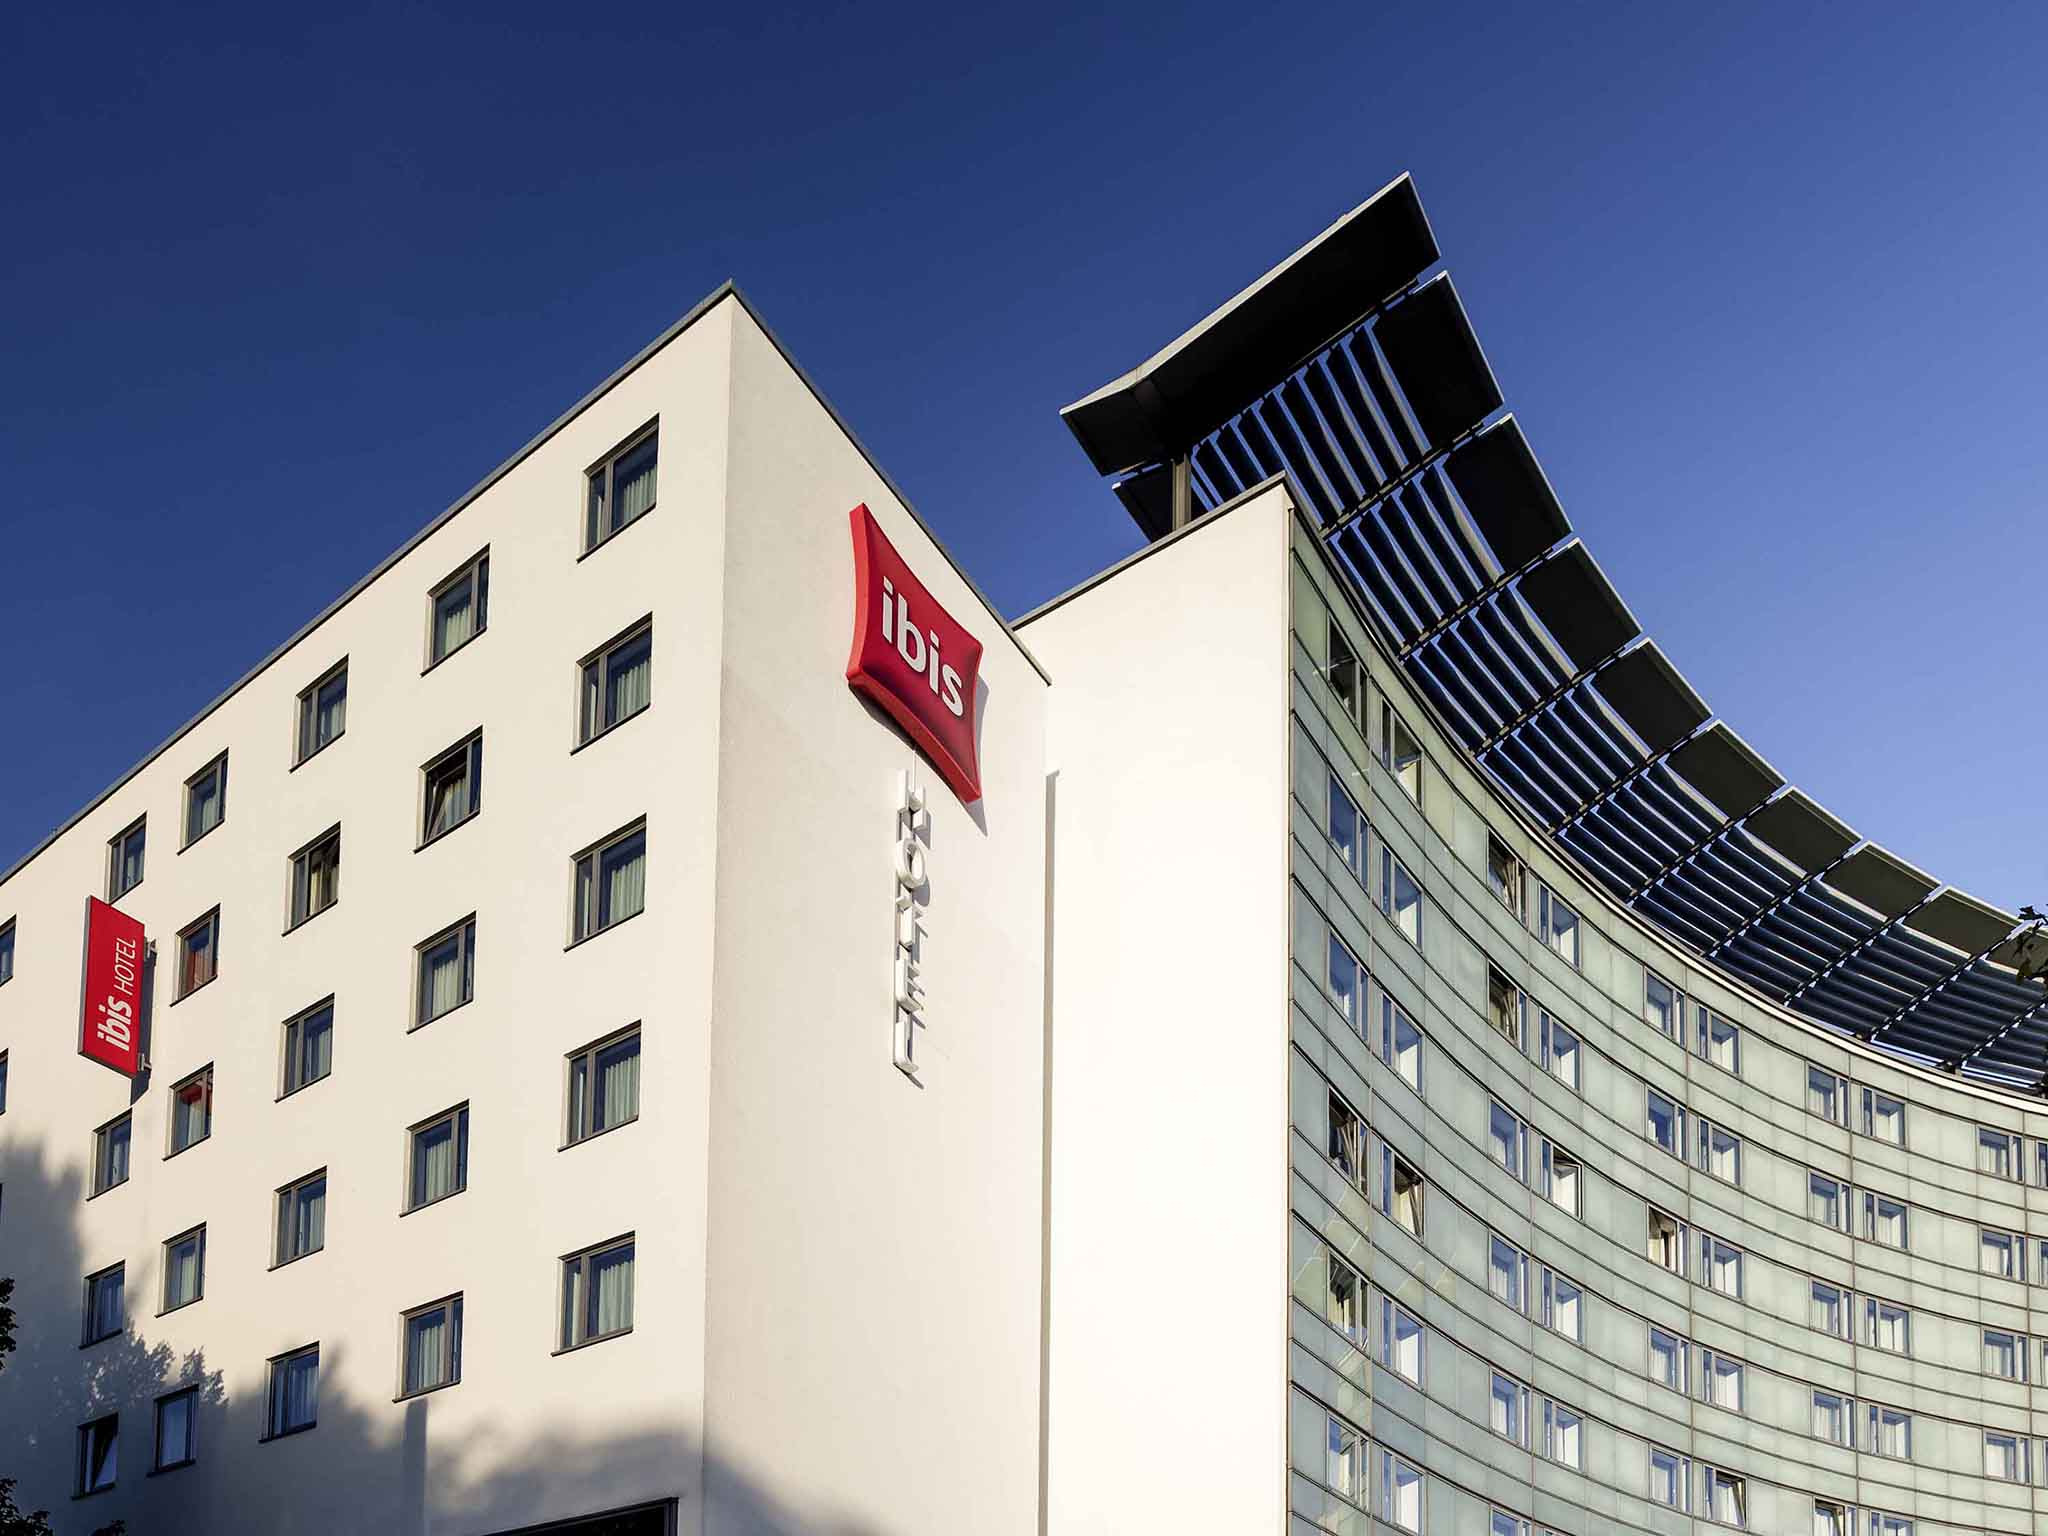 Hotel Ibis Berlin Mitte Book Your Hotel In Berlin Mitte Now - Berlin map hotels